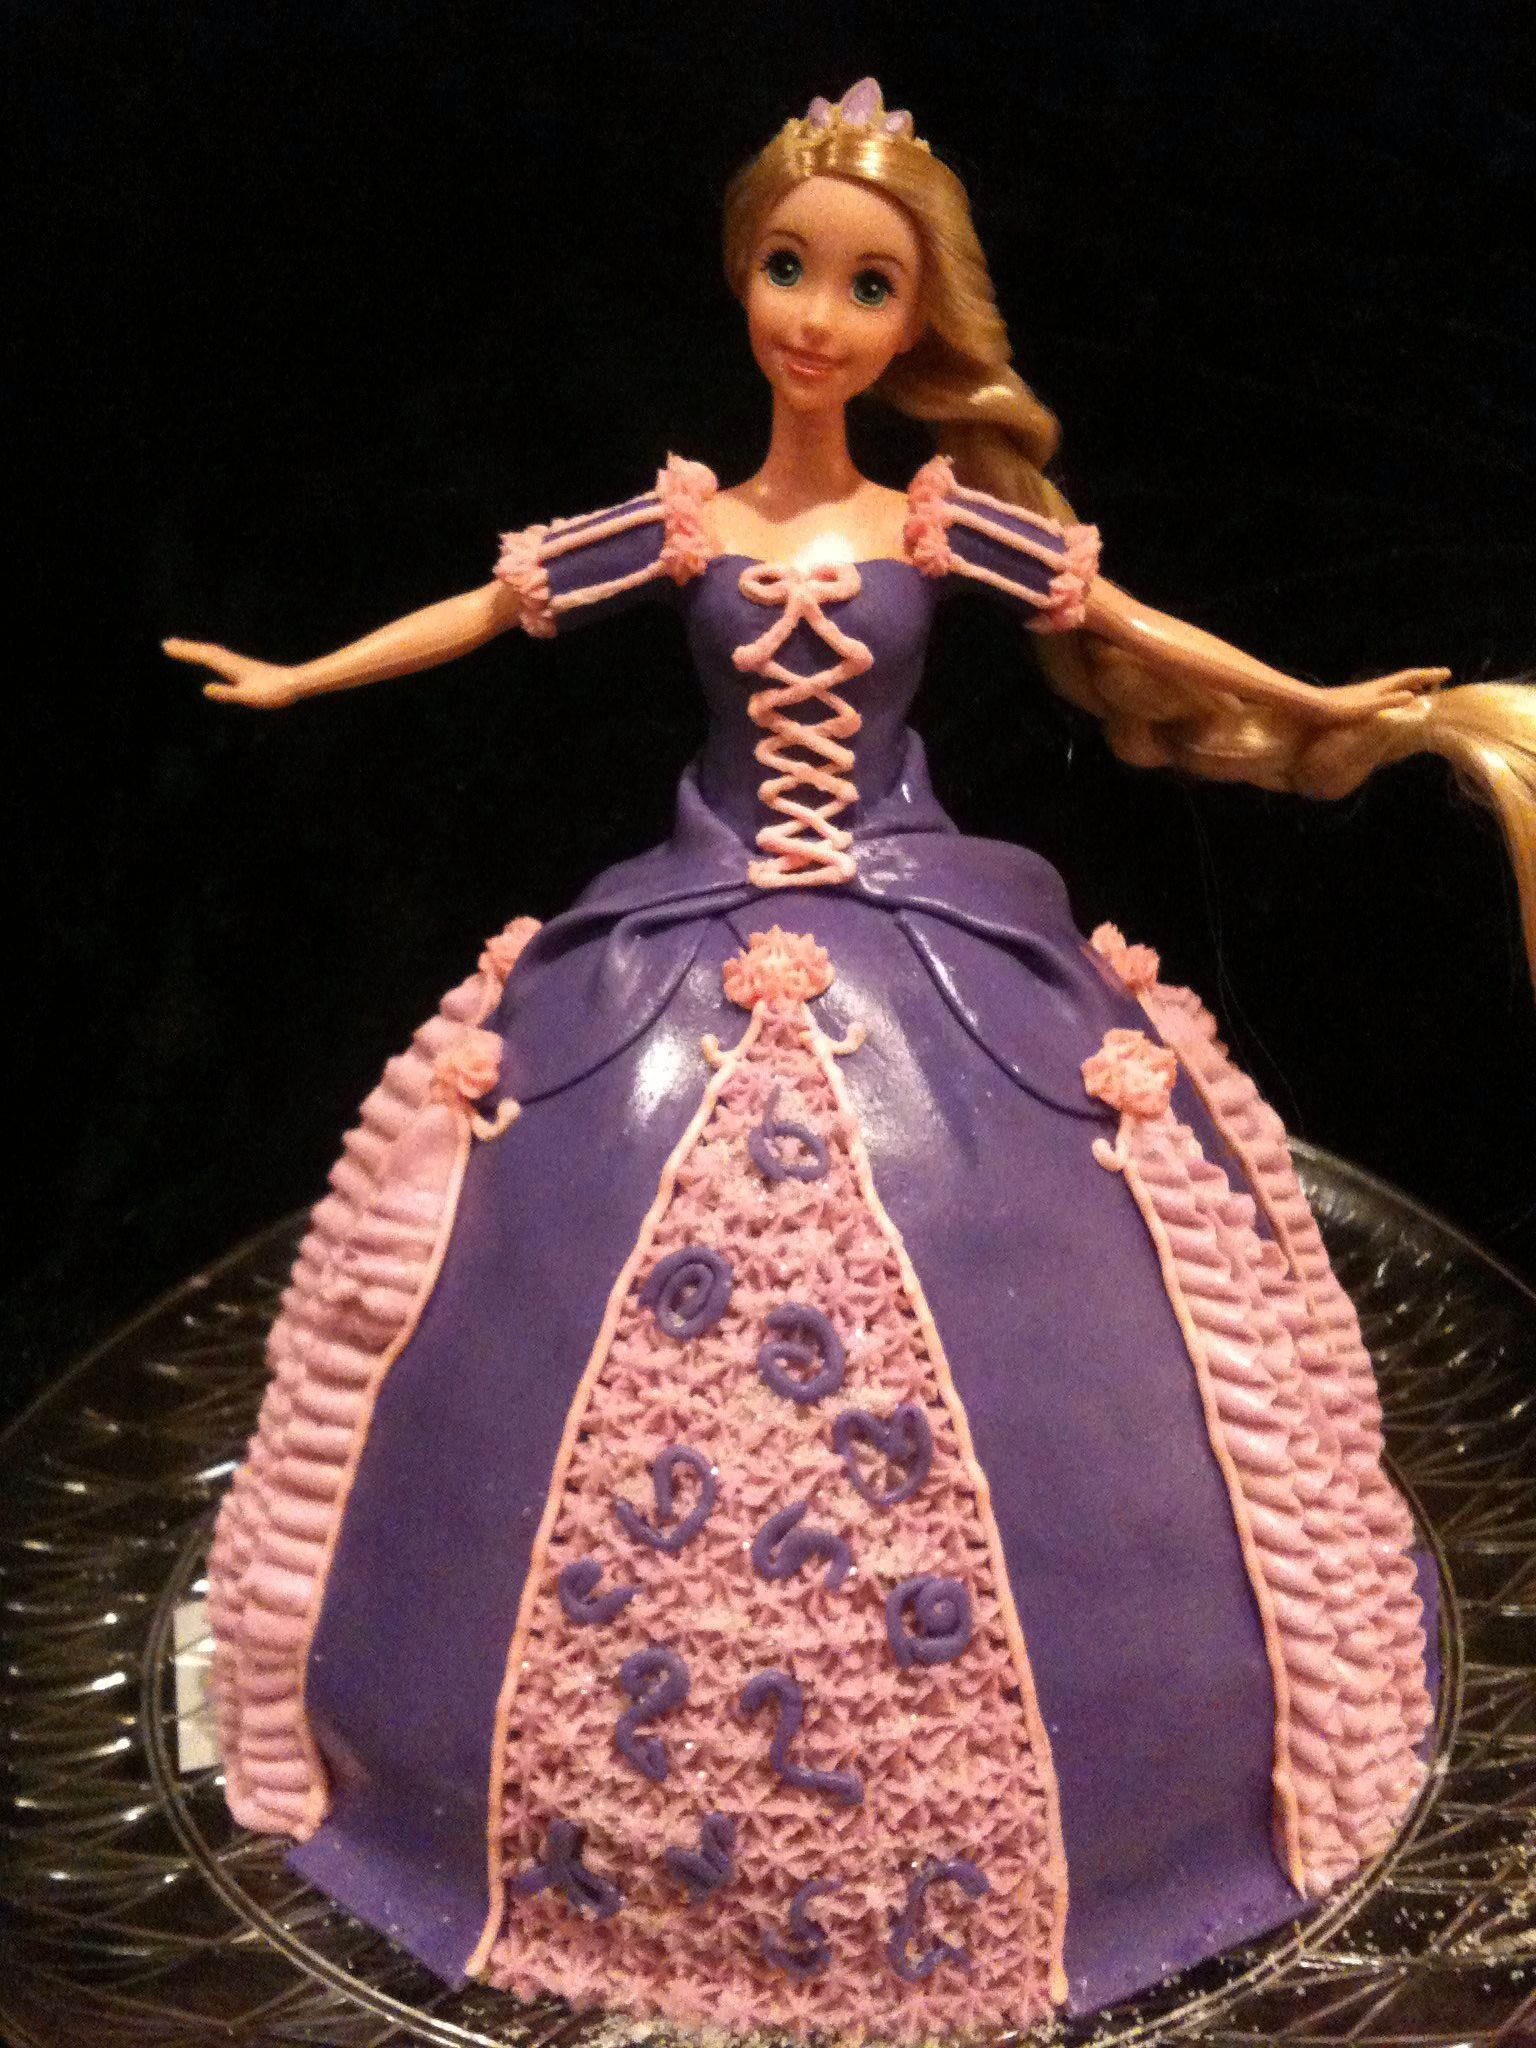 My first shot at a doll cake